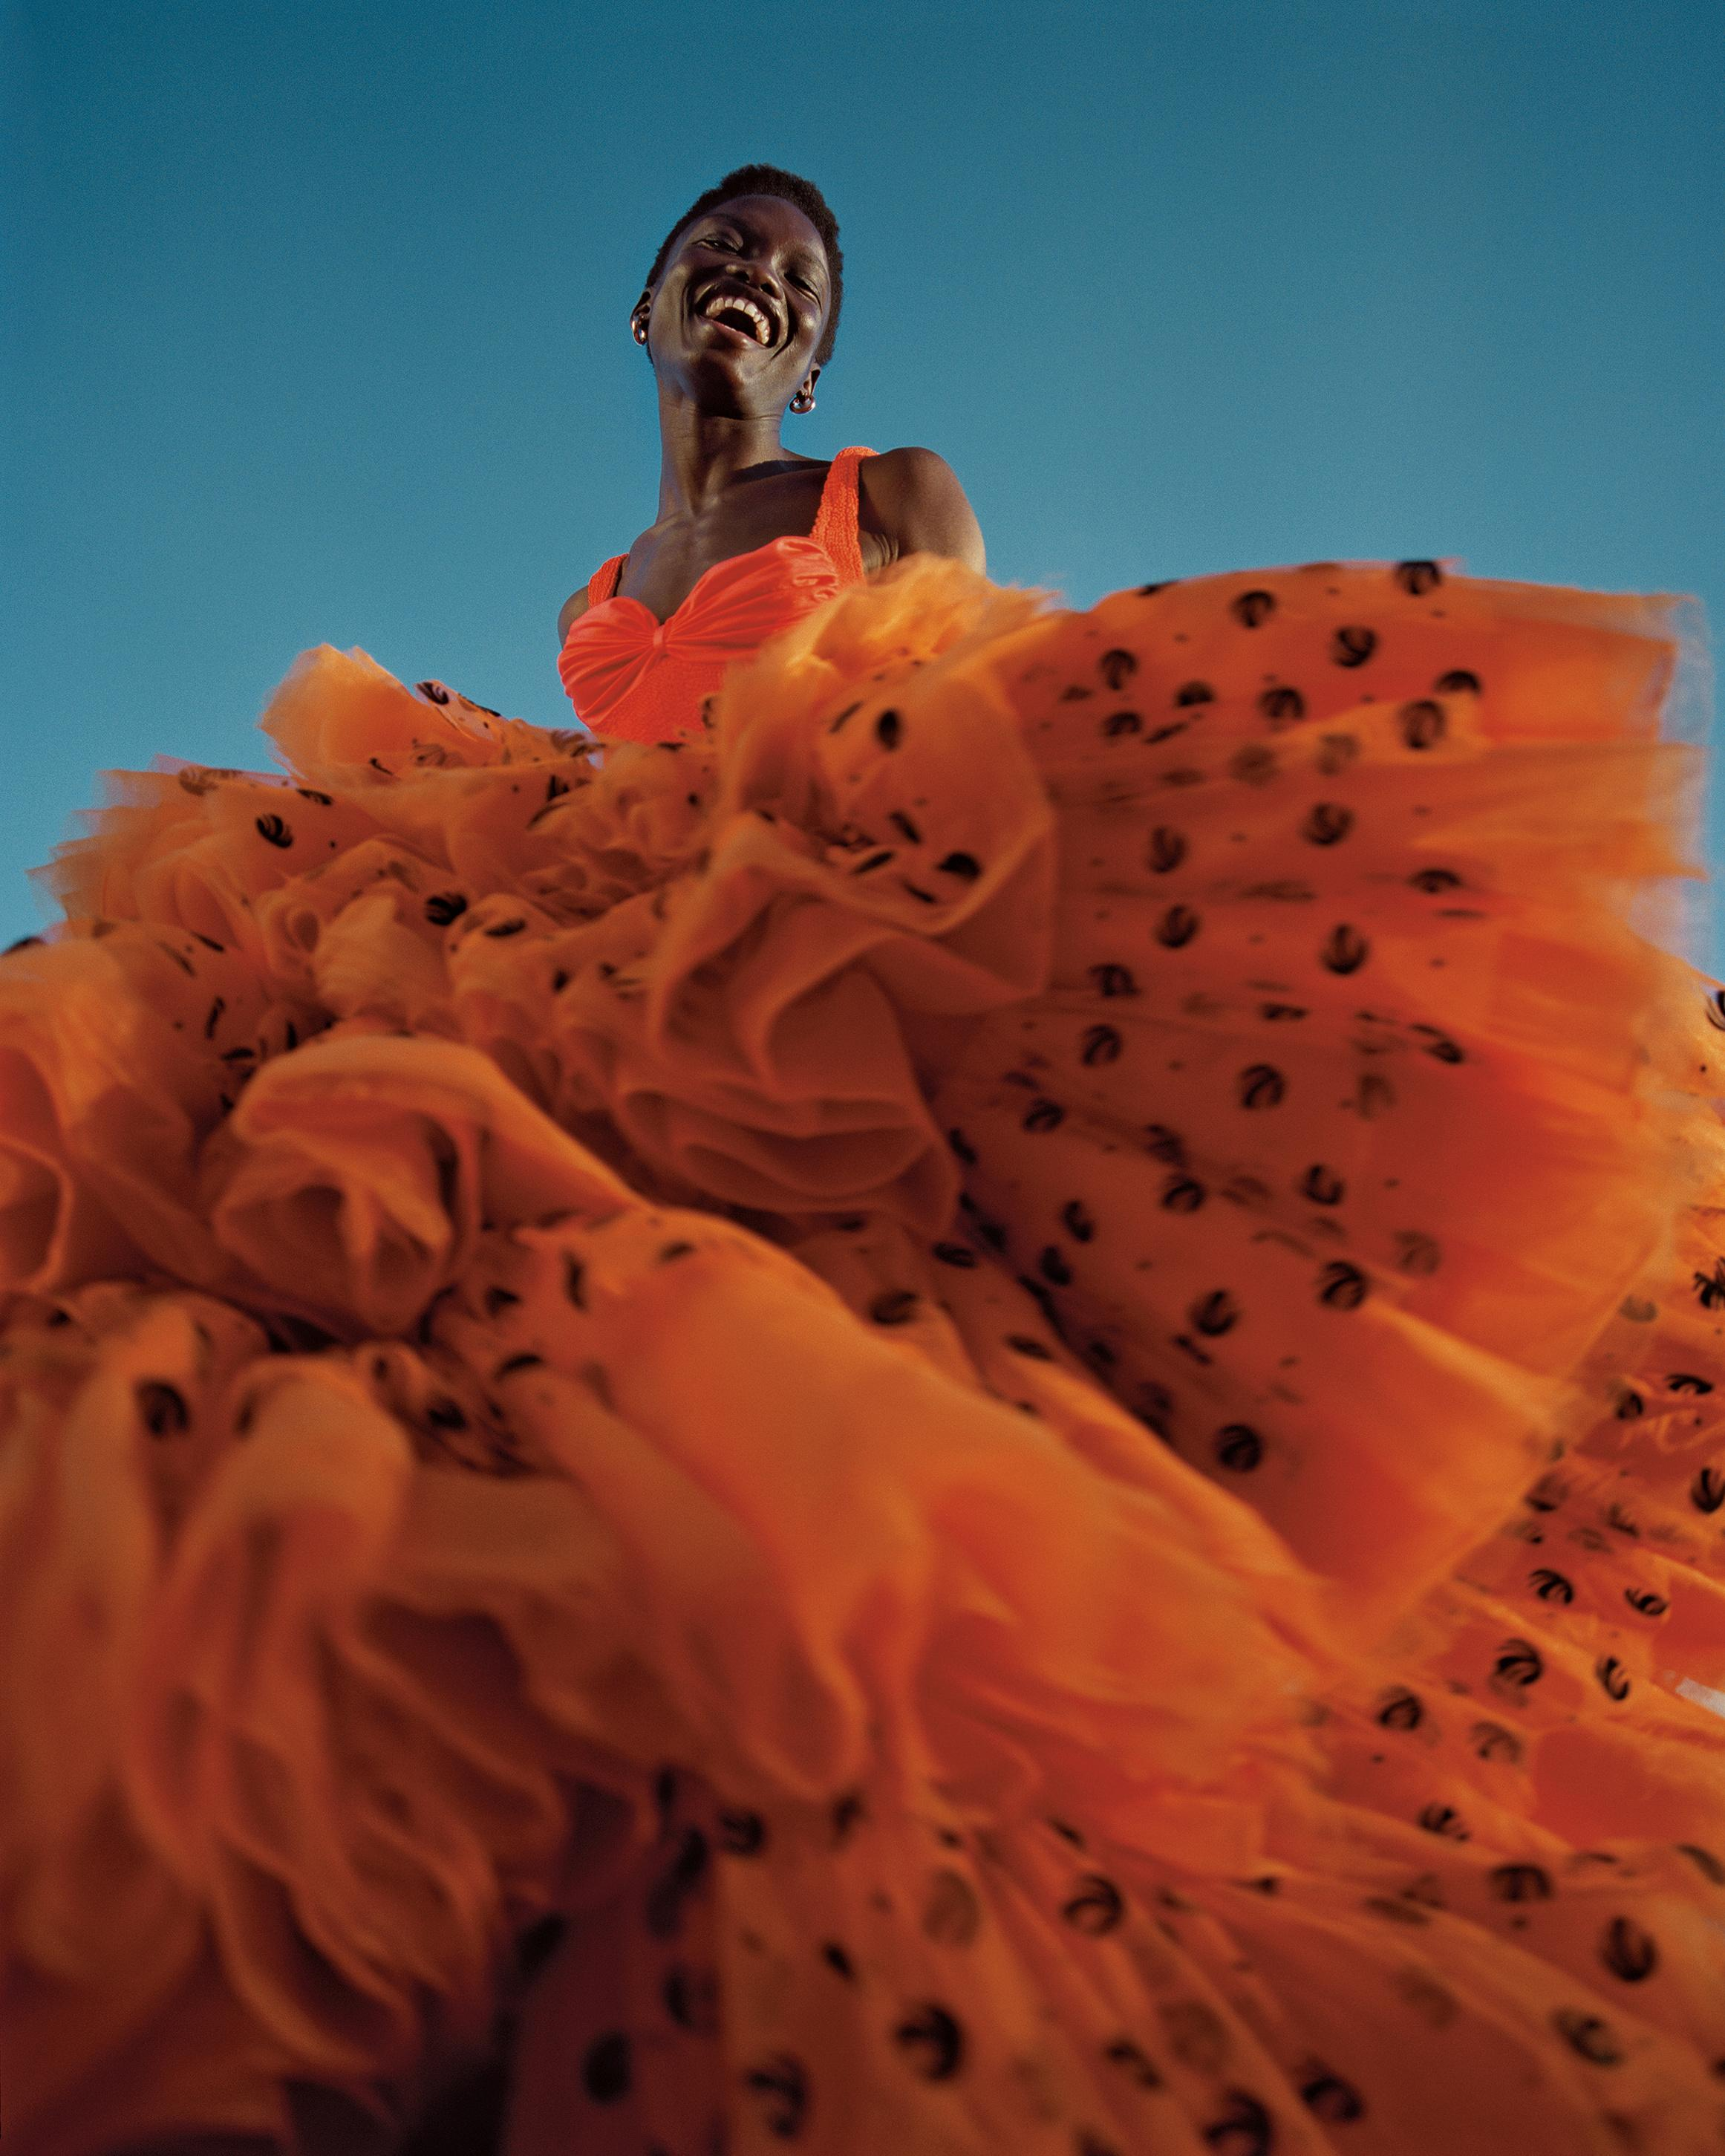 From Beyoncé covers to indie shoots: the new generation of black fashion photographers